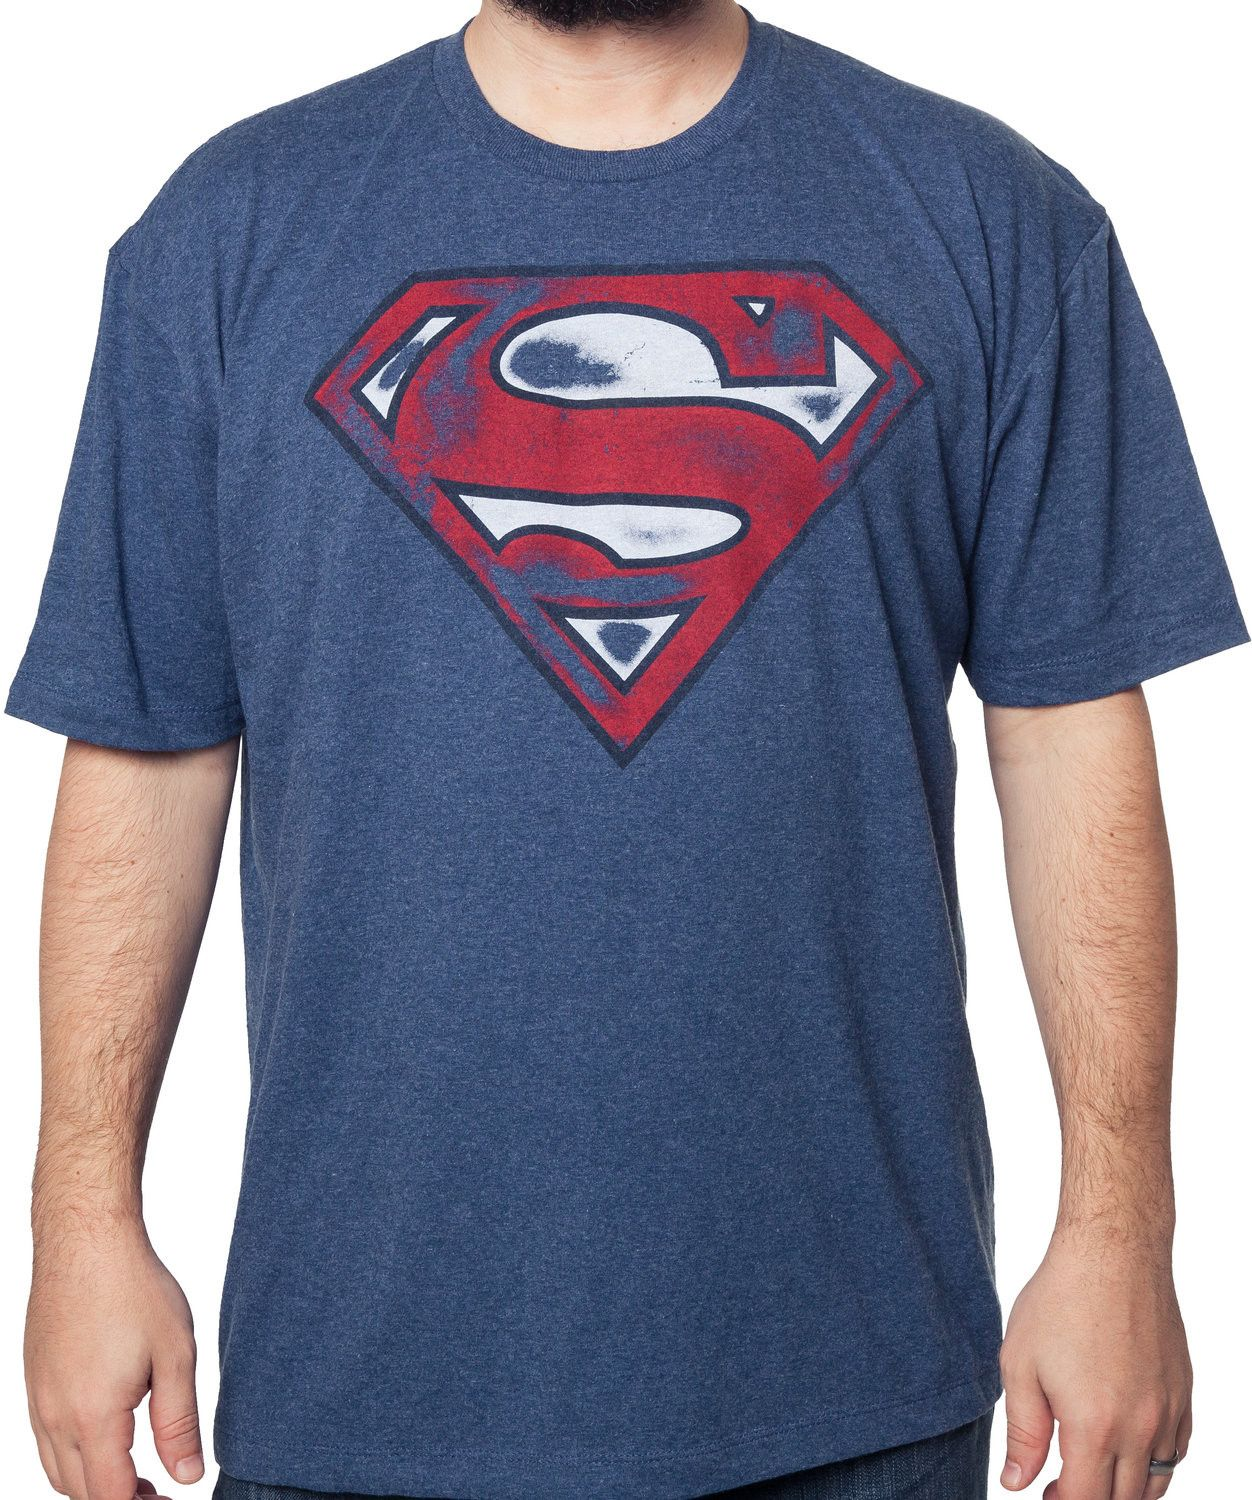 Cheap Price Outlet Sale Sale With Credit Card Superman Graffiti Logo T-shirt DC Comics Sale The Cheapest Buy Online Cheap Price XBbjI